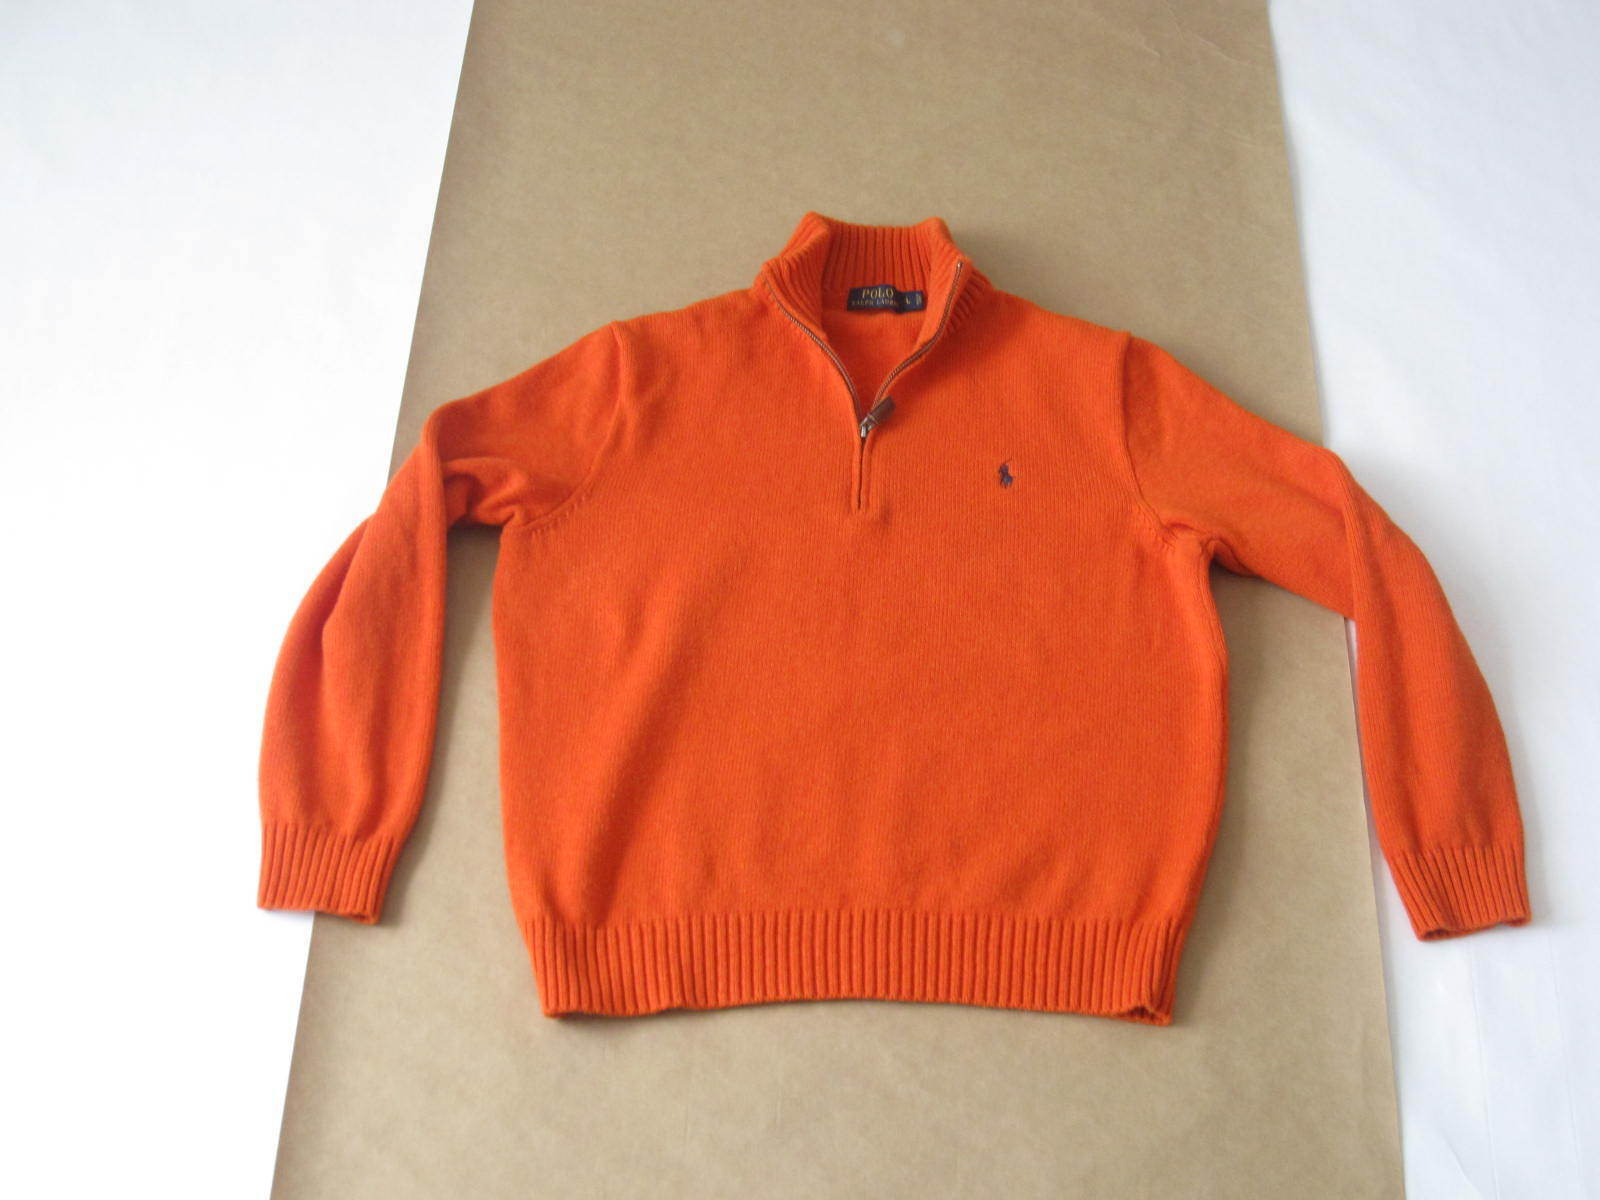 Men's Polo Ralph Lauren 1 4 Zip Sweater Size Large